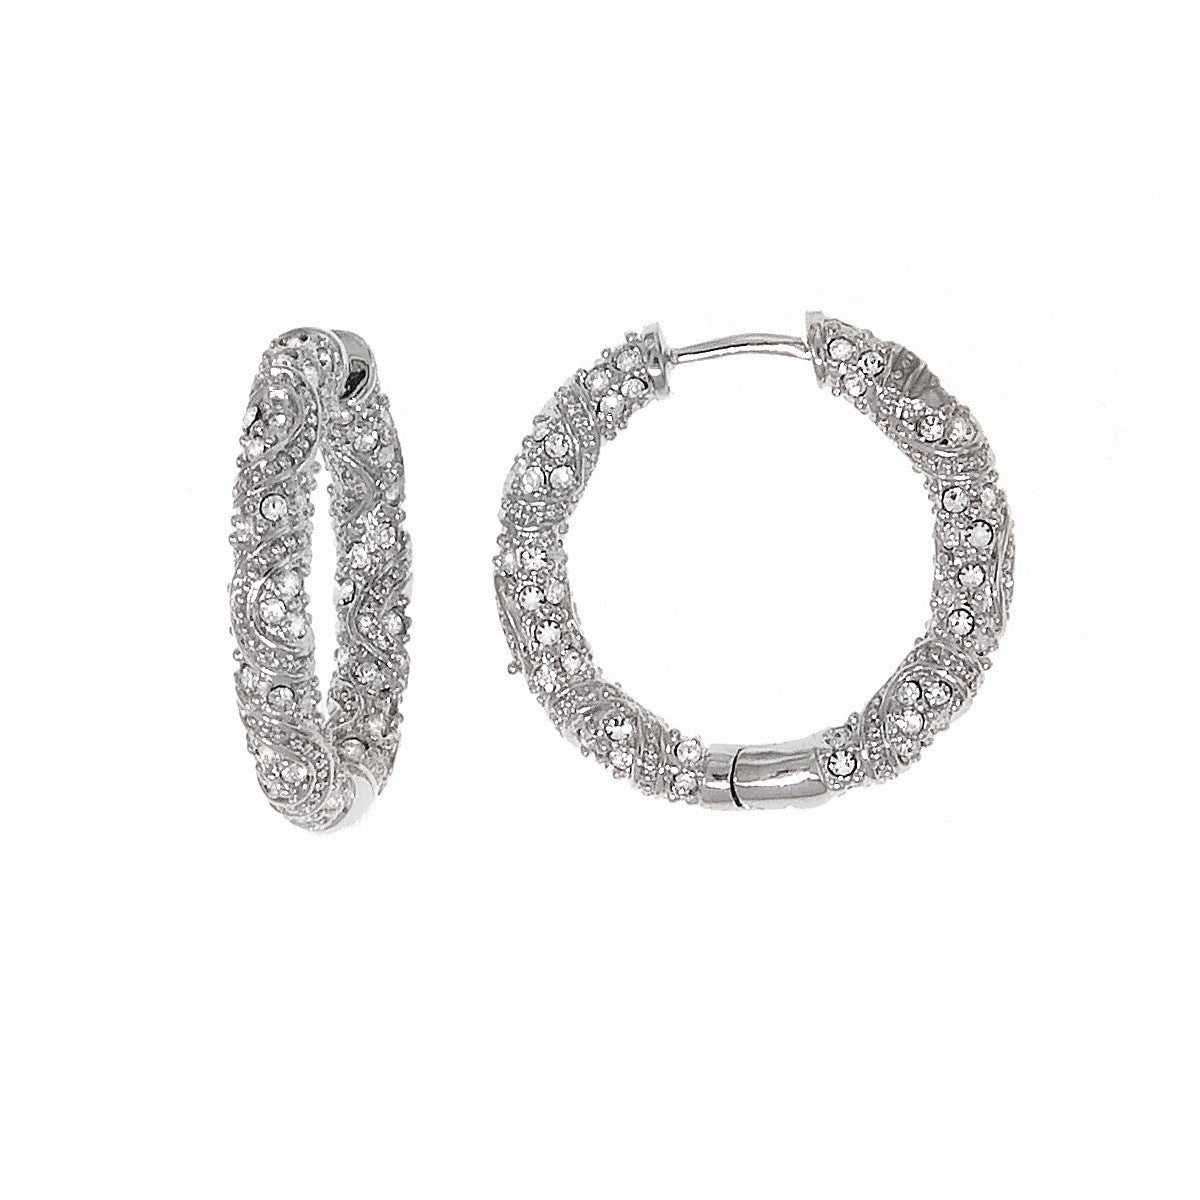 Swarovski Crystal Antique Style Small Hoop Earring by Bobby Schandra